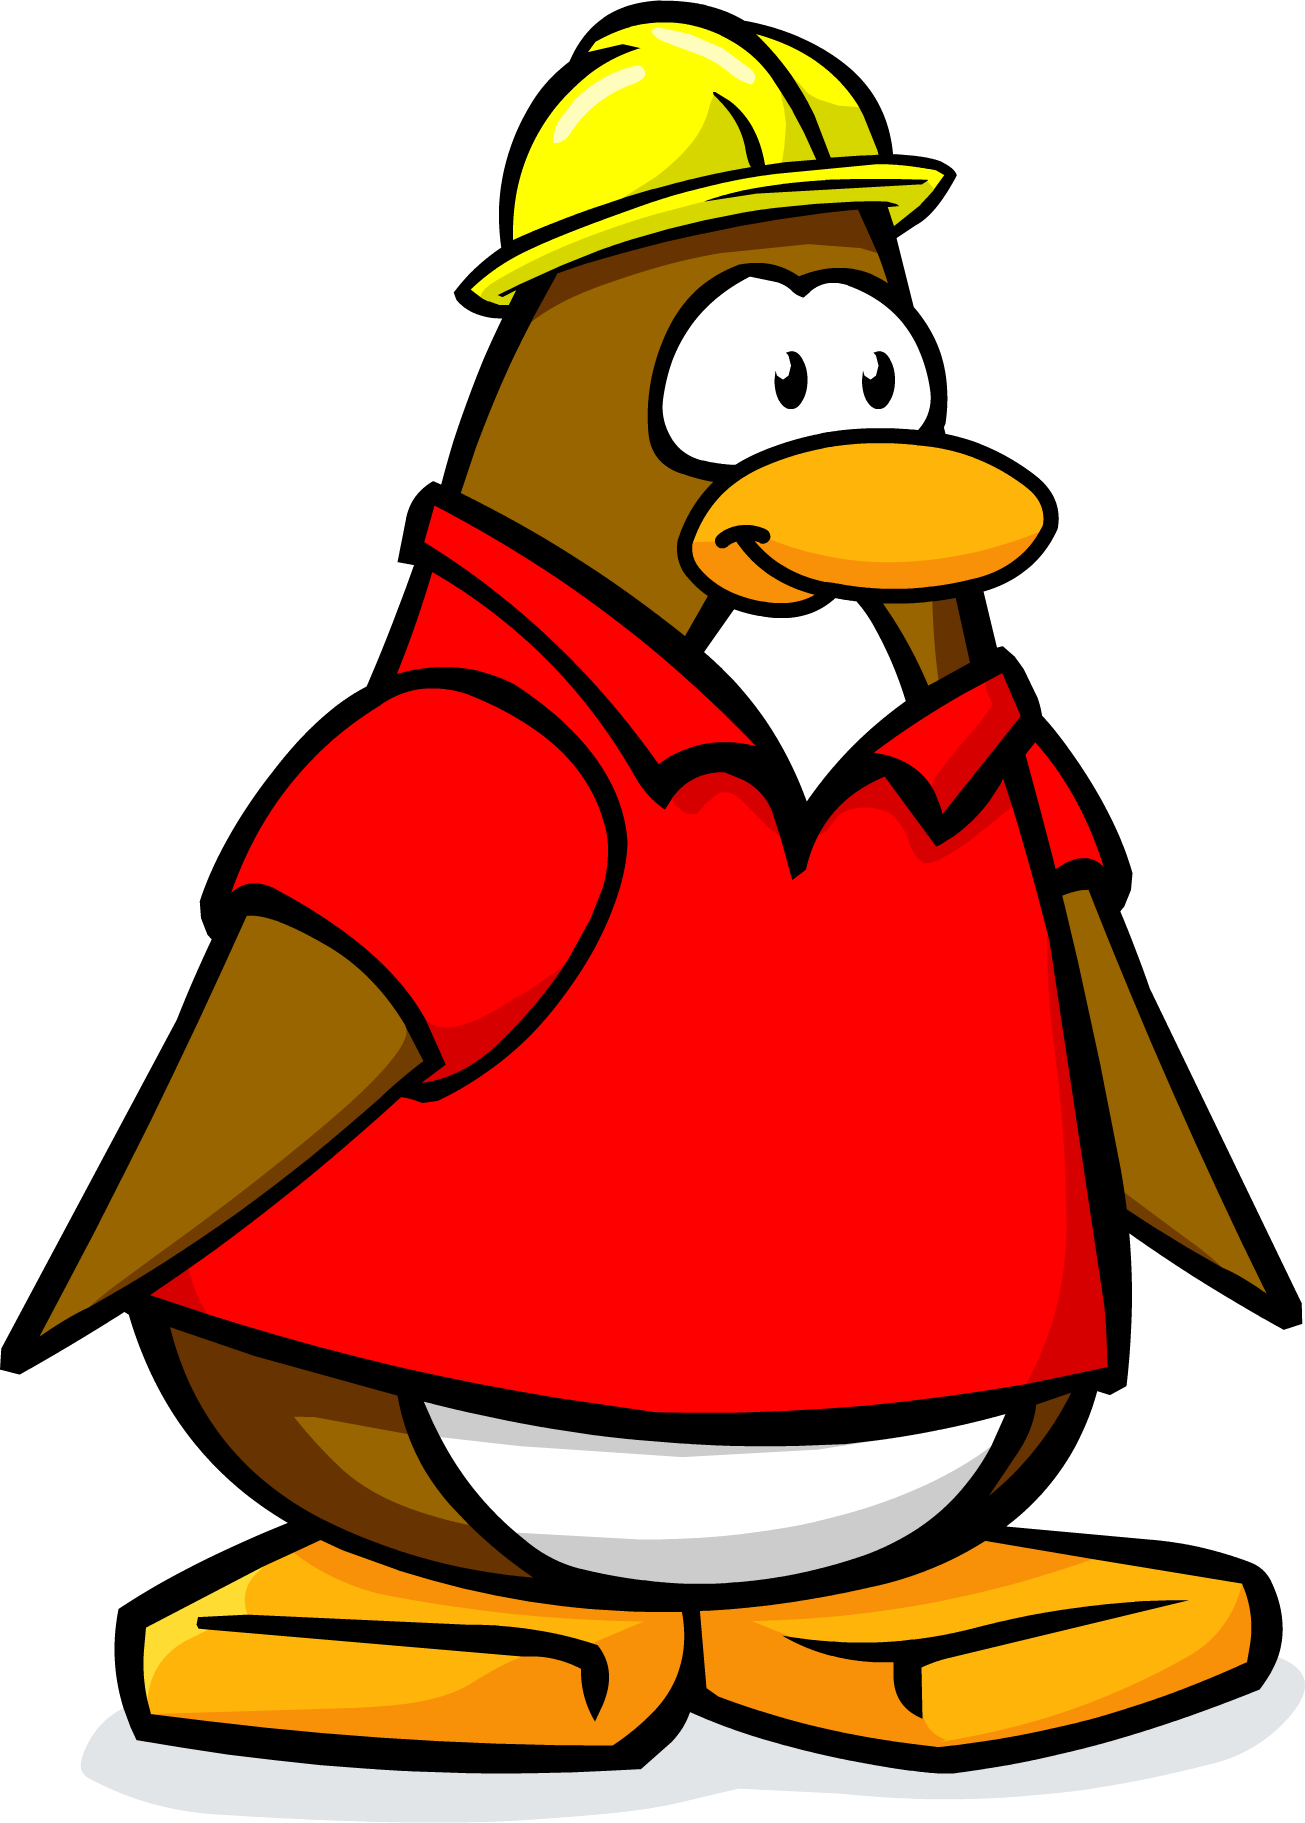 Skis clipart penguin. Iggy character club wiki